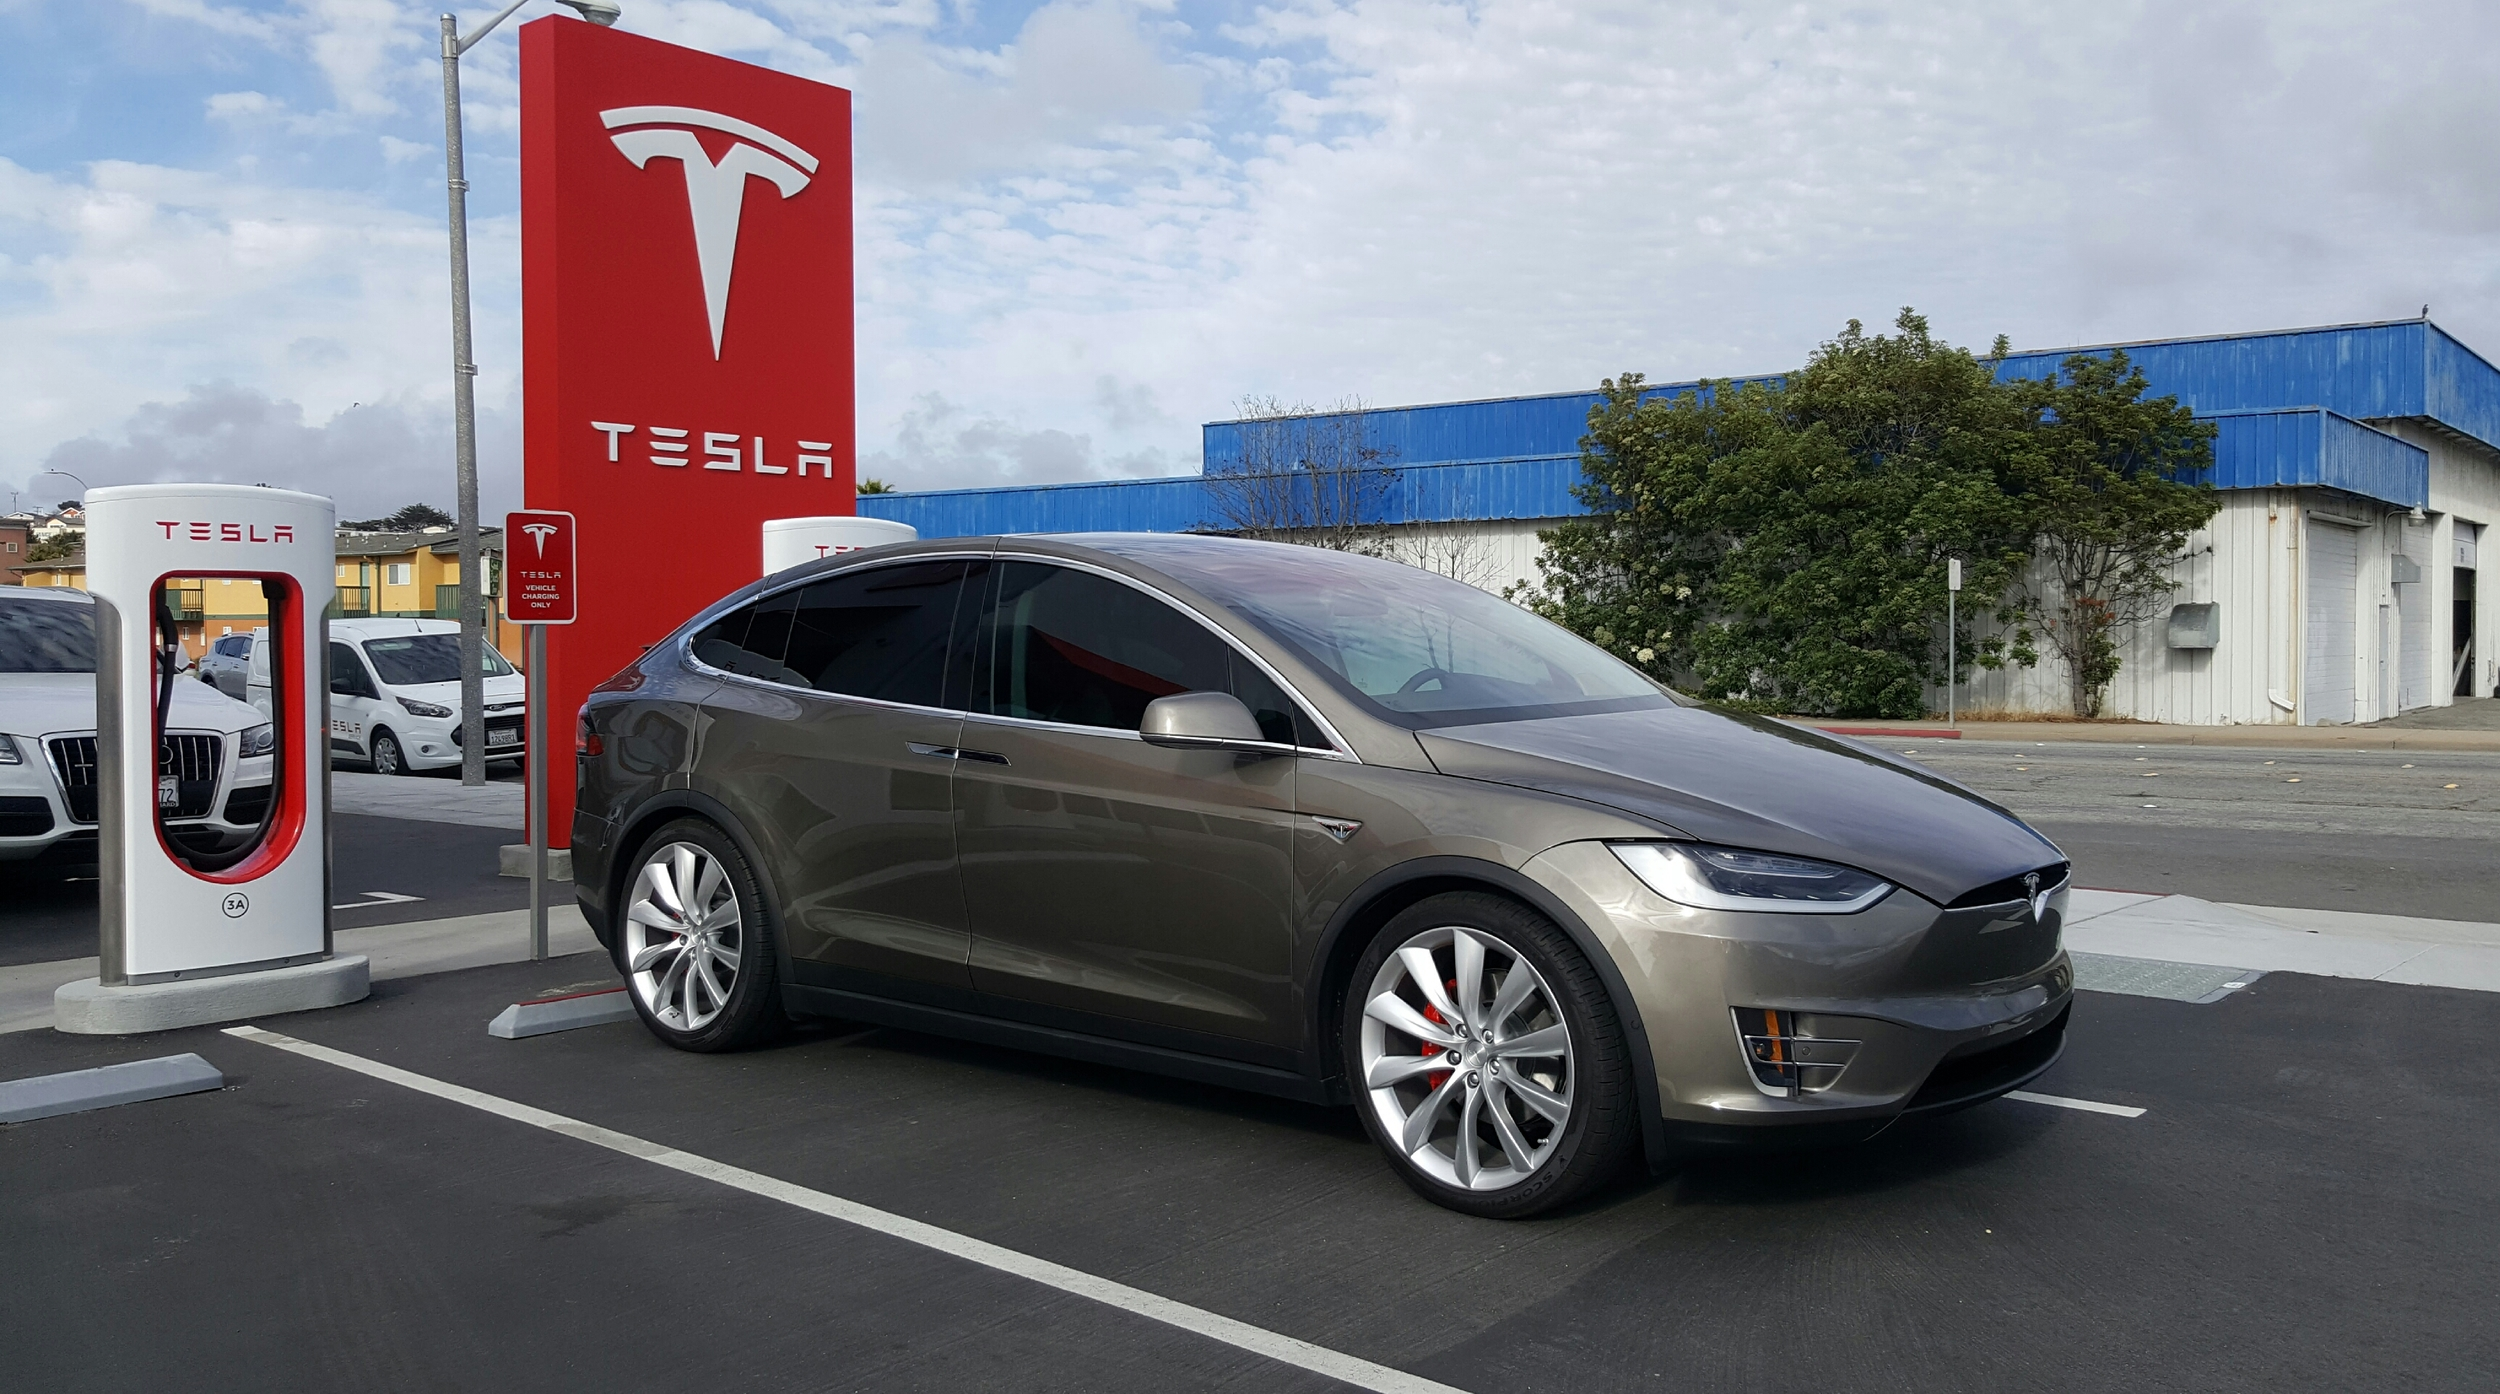 At the Supercharger in Seaside, CA